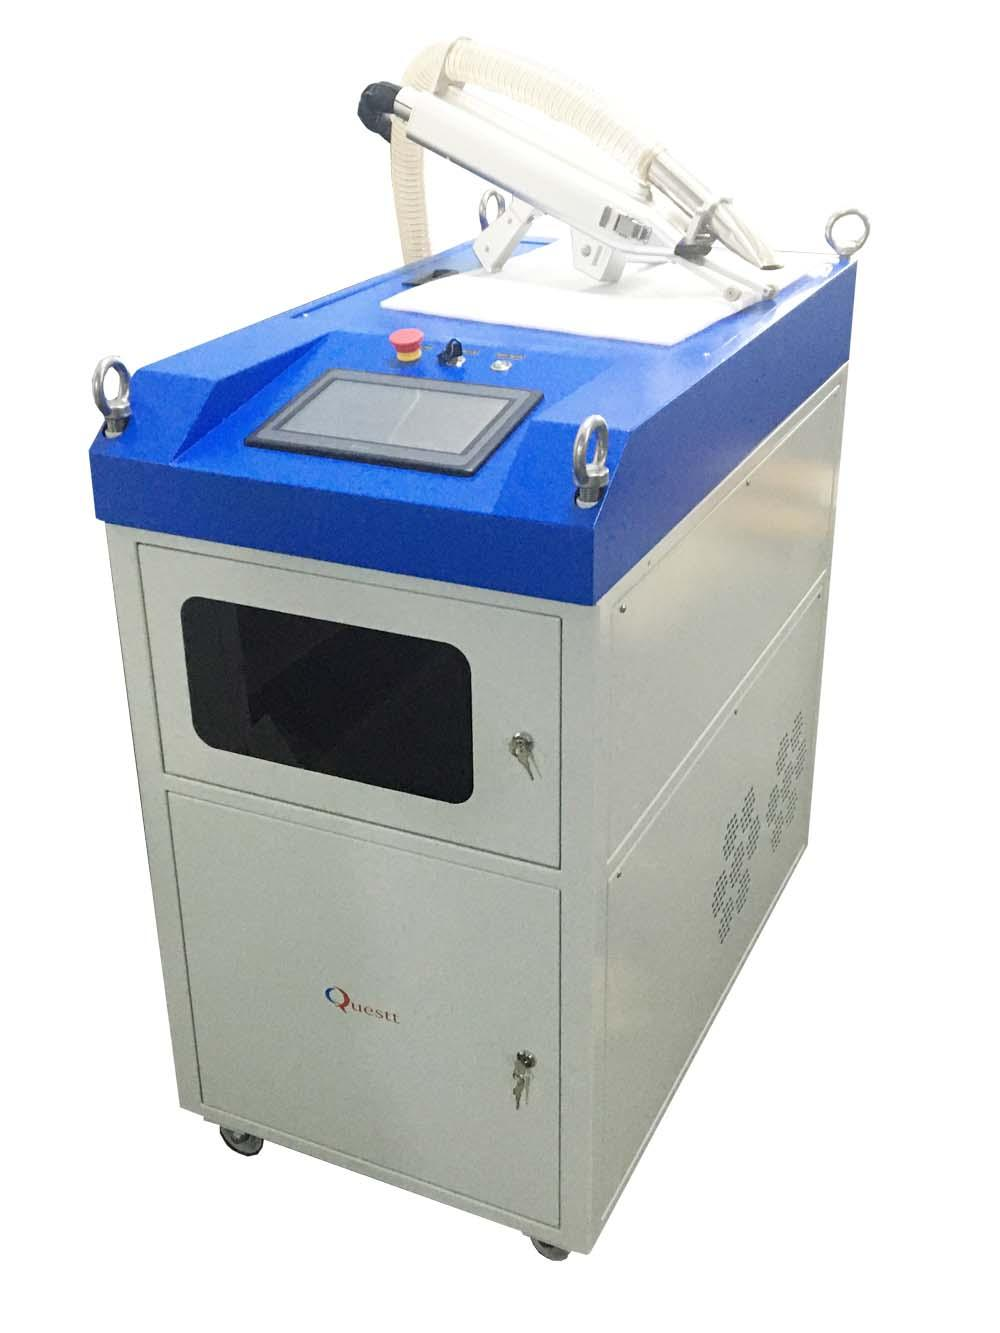 news-IPG 500W Laser Cleaning Machine Ready for Shipping-QUESTT-img